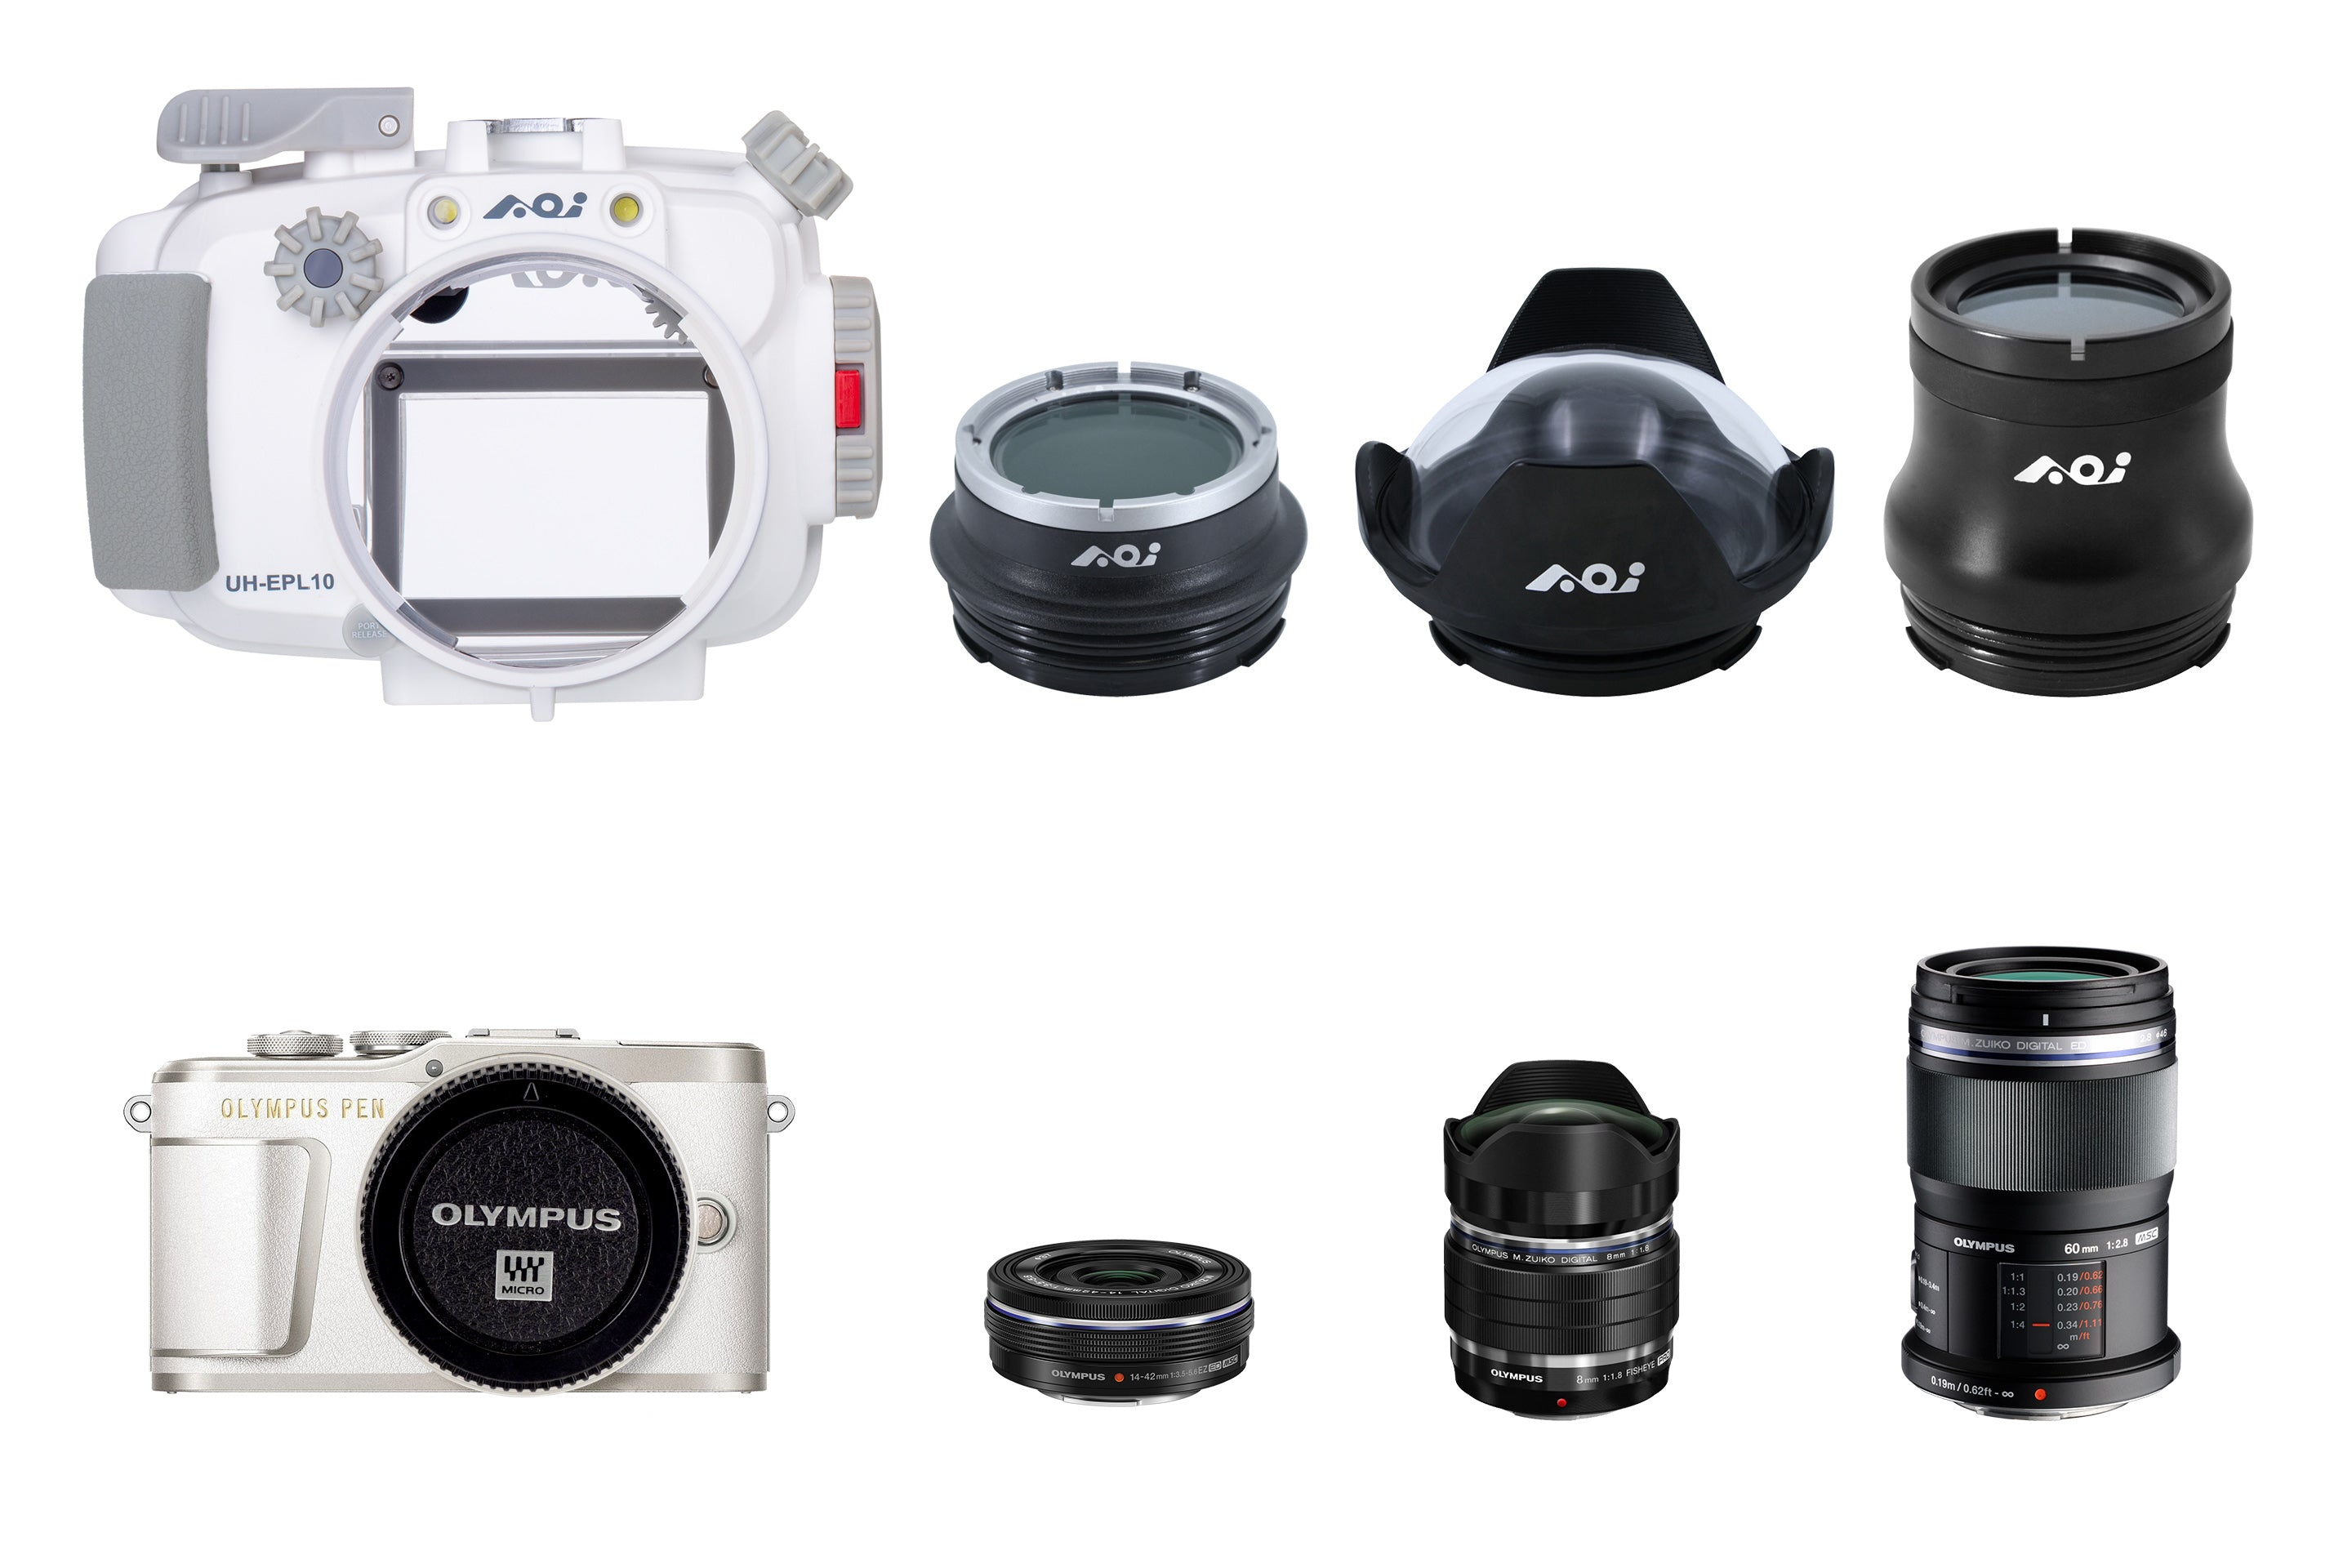 AOI UH-UPL10 Underwater Housing for Olympus Pen EPL-9/EPL-10